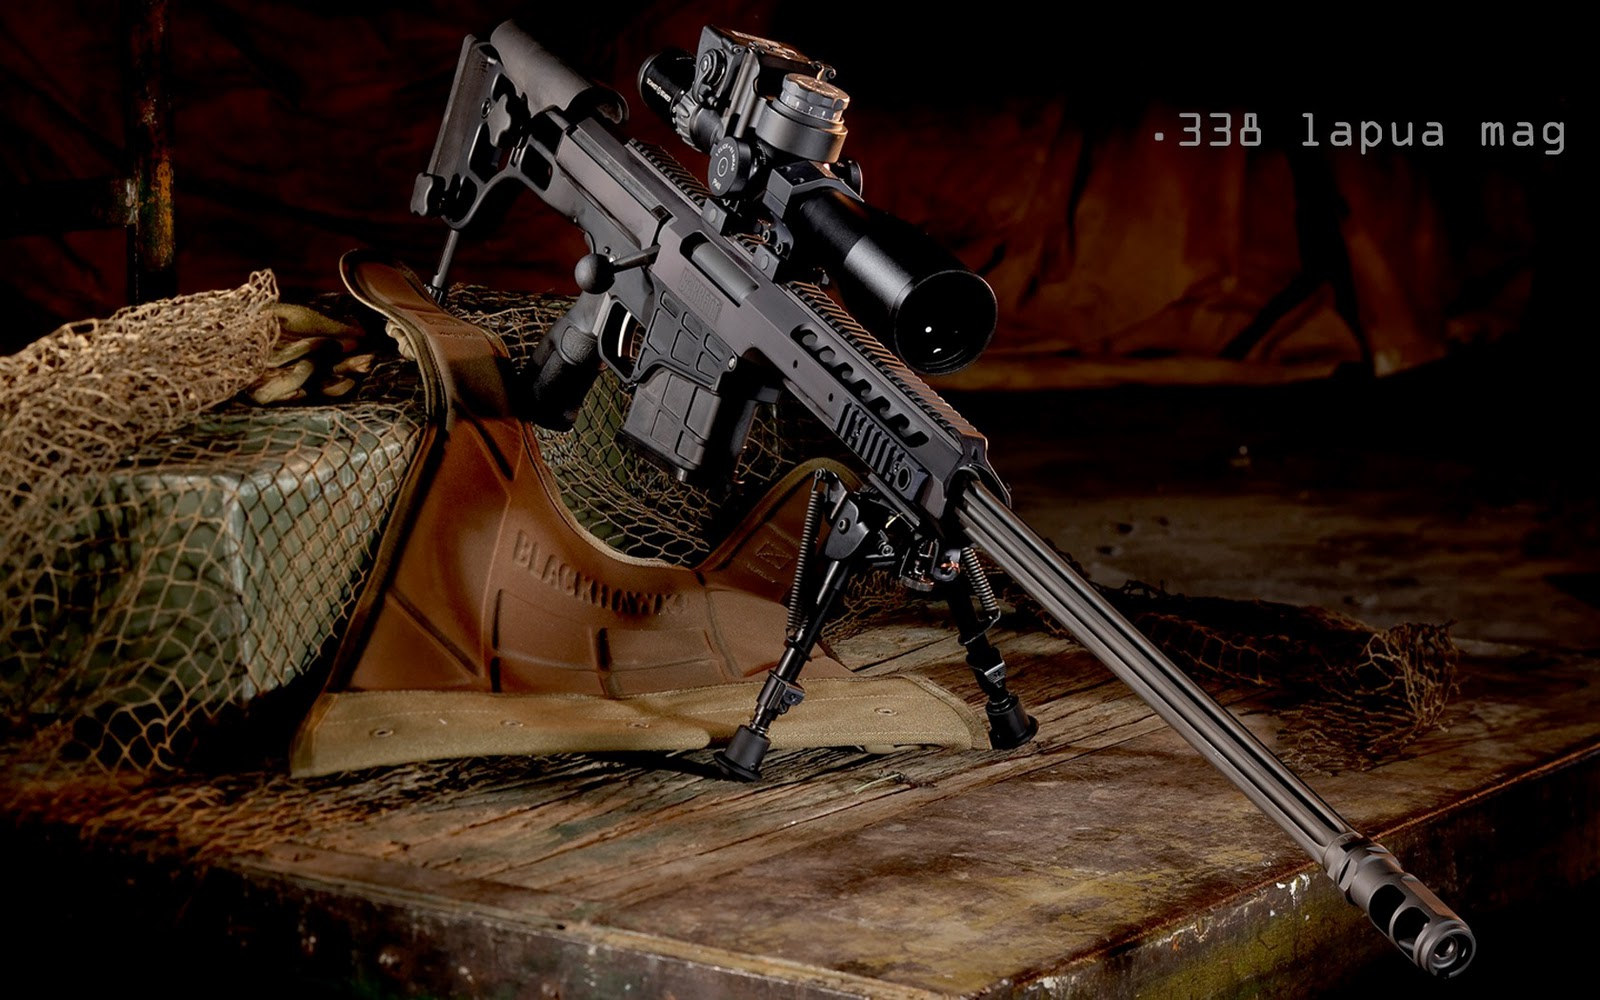 338 Lapua HD Sniper Rifle Desktop Gun Background Vvallpapernetjpg 1600x1000